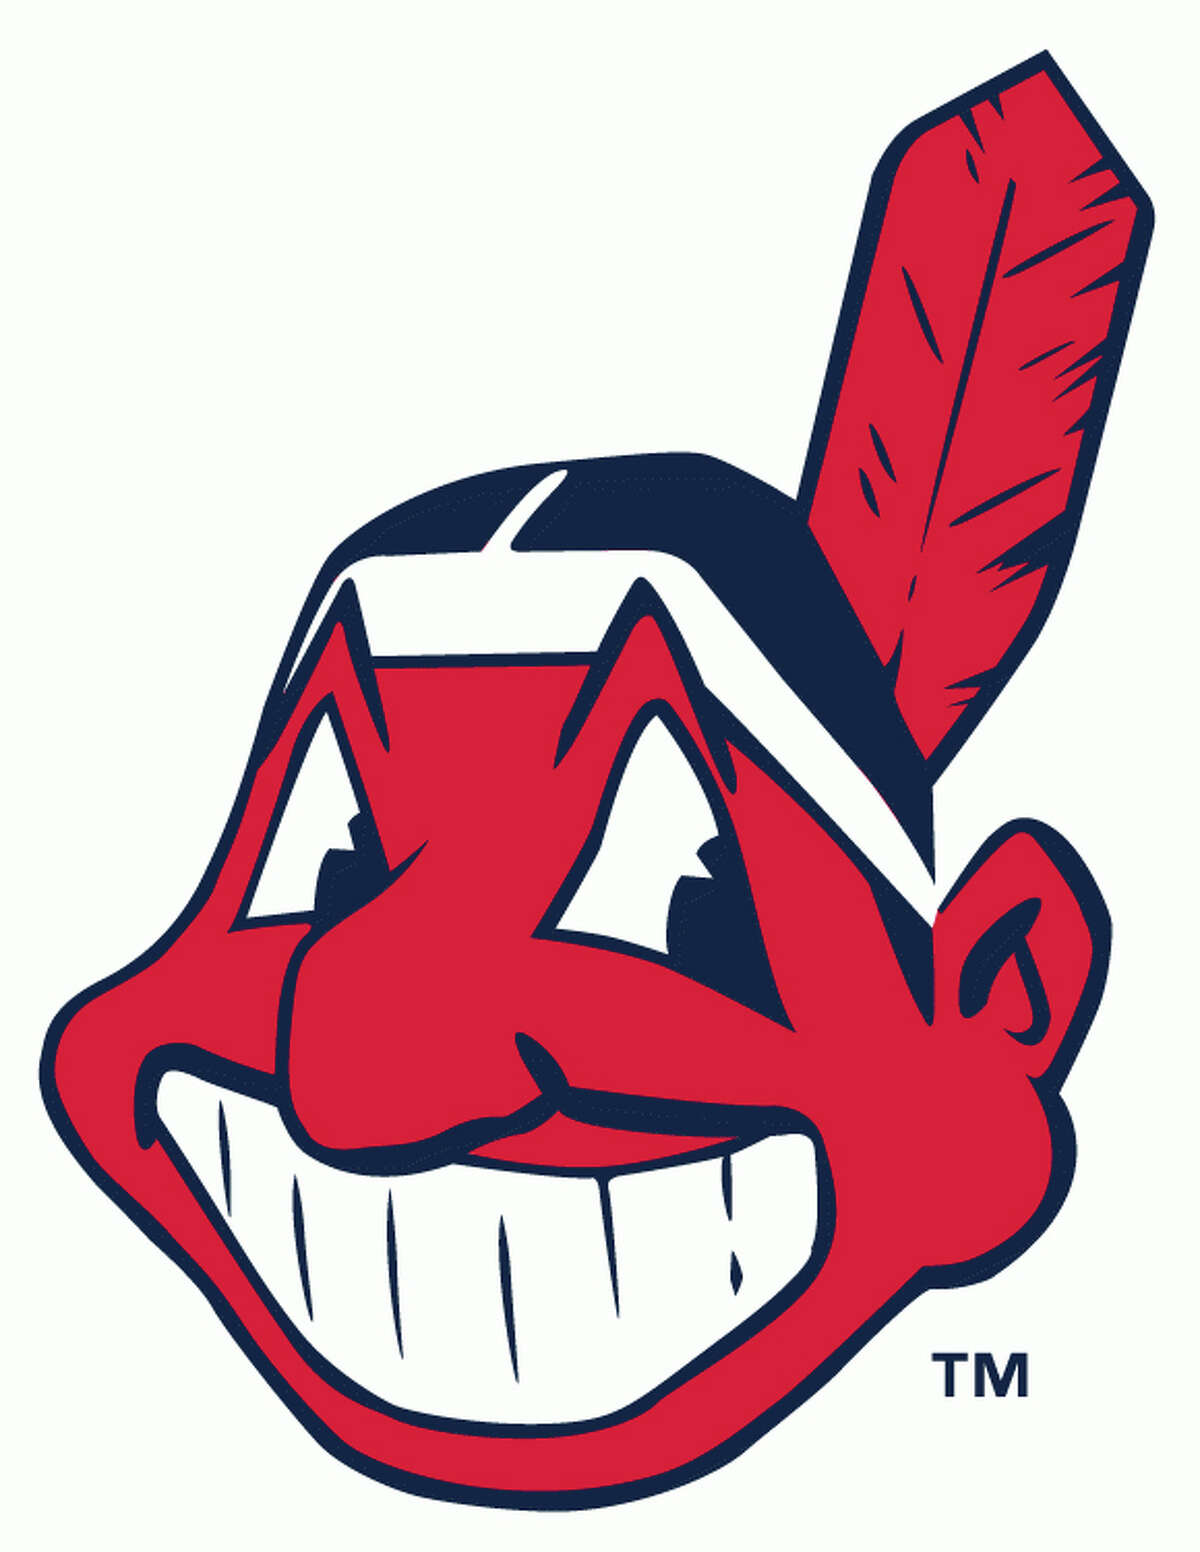 Cleveland Indians mascot, 'Chief Wahoo' has been criticized for being in poor taste, but the team has no plans to change the name. More from ABC News.